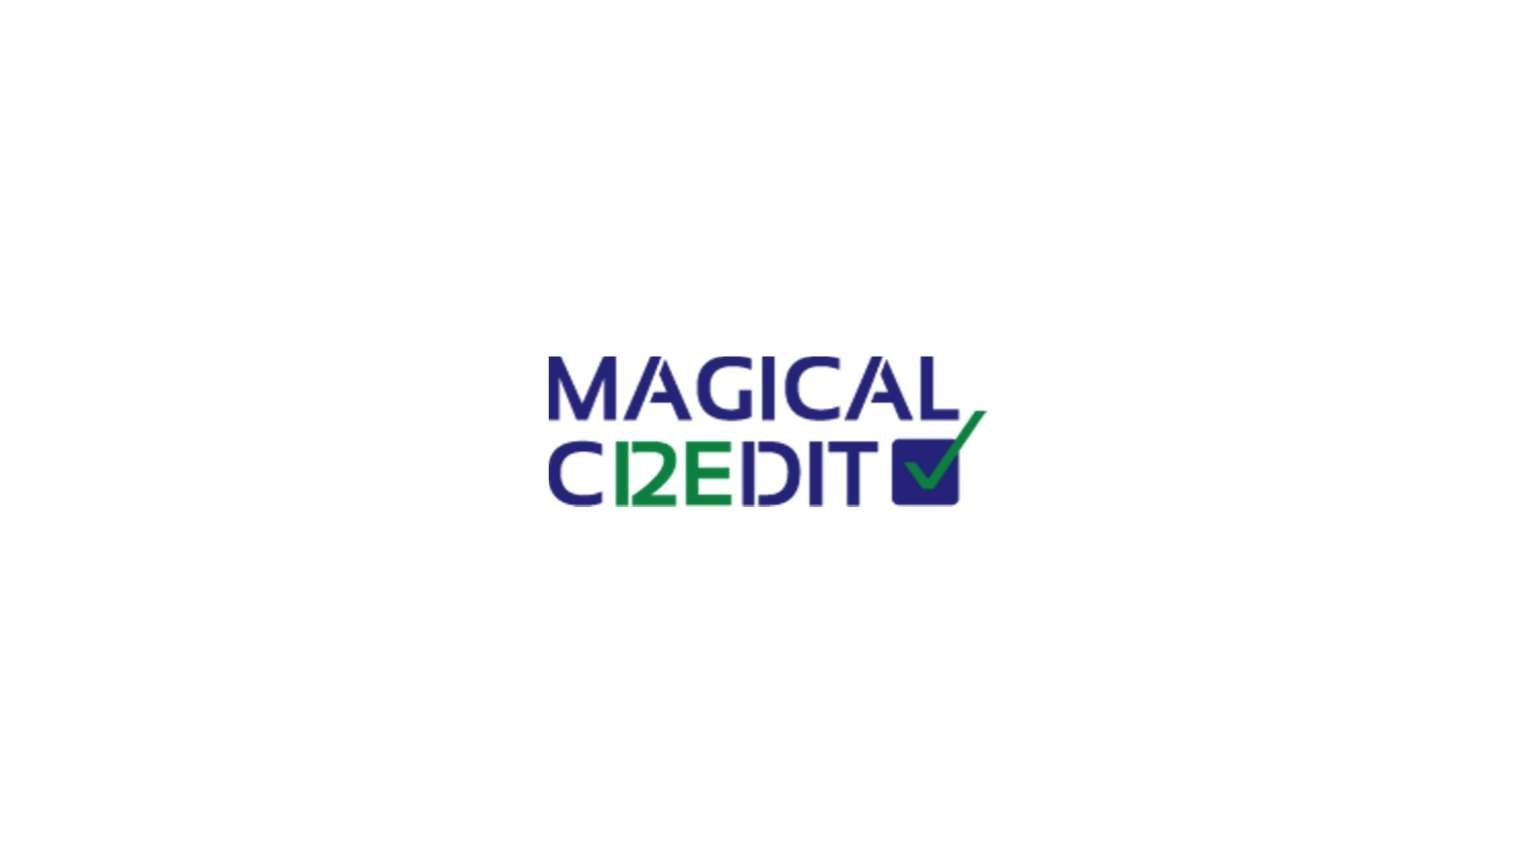 Apply today to borrow up to $20,000 with Magical Credit for personal expenses and take up to five years to repay your loan.